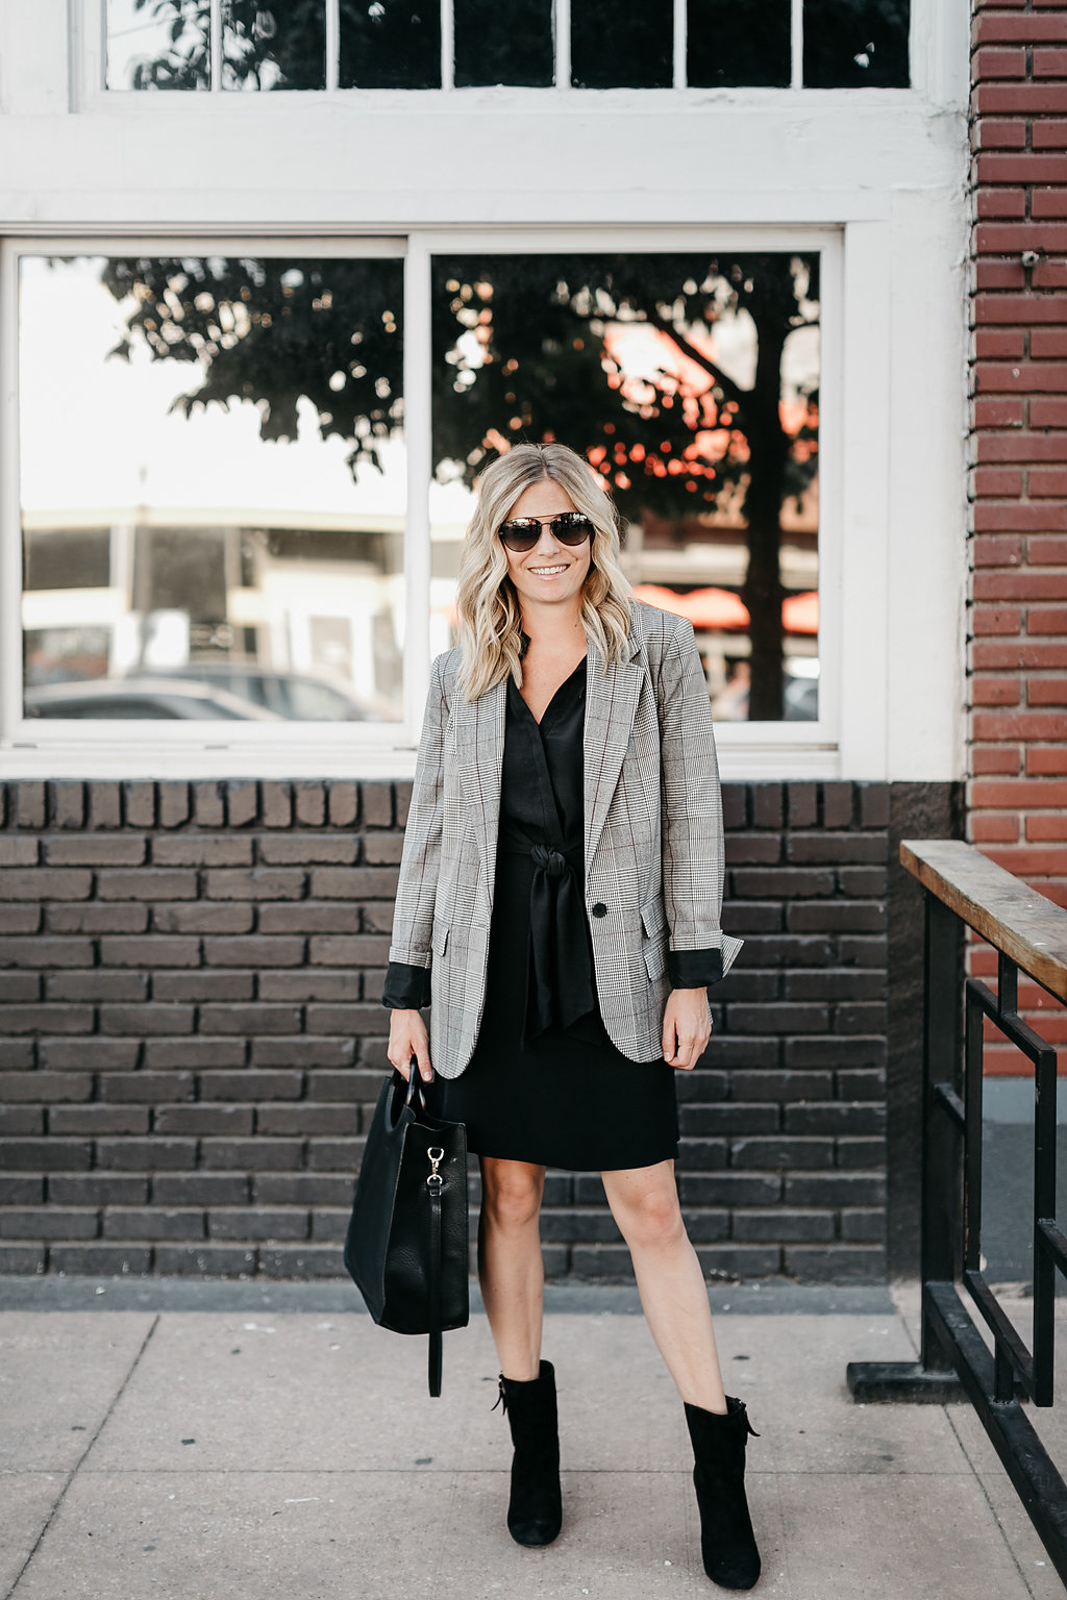 Ann Taylor outfit